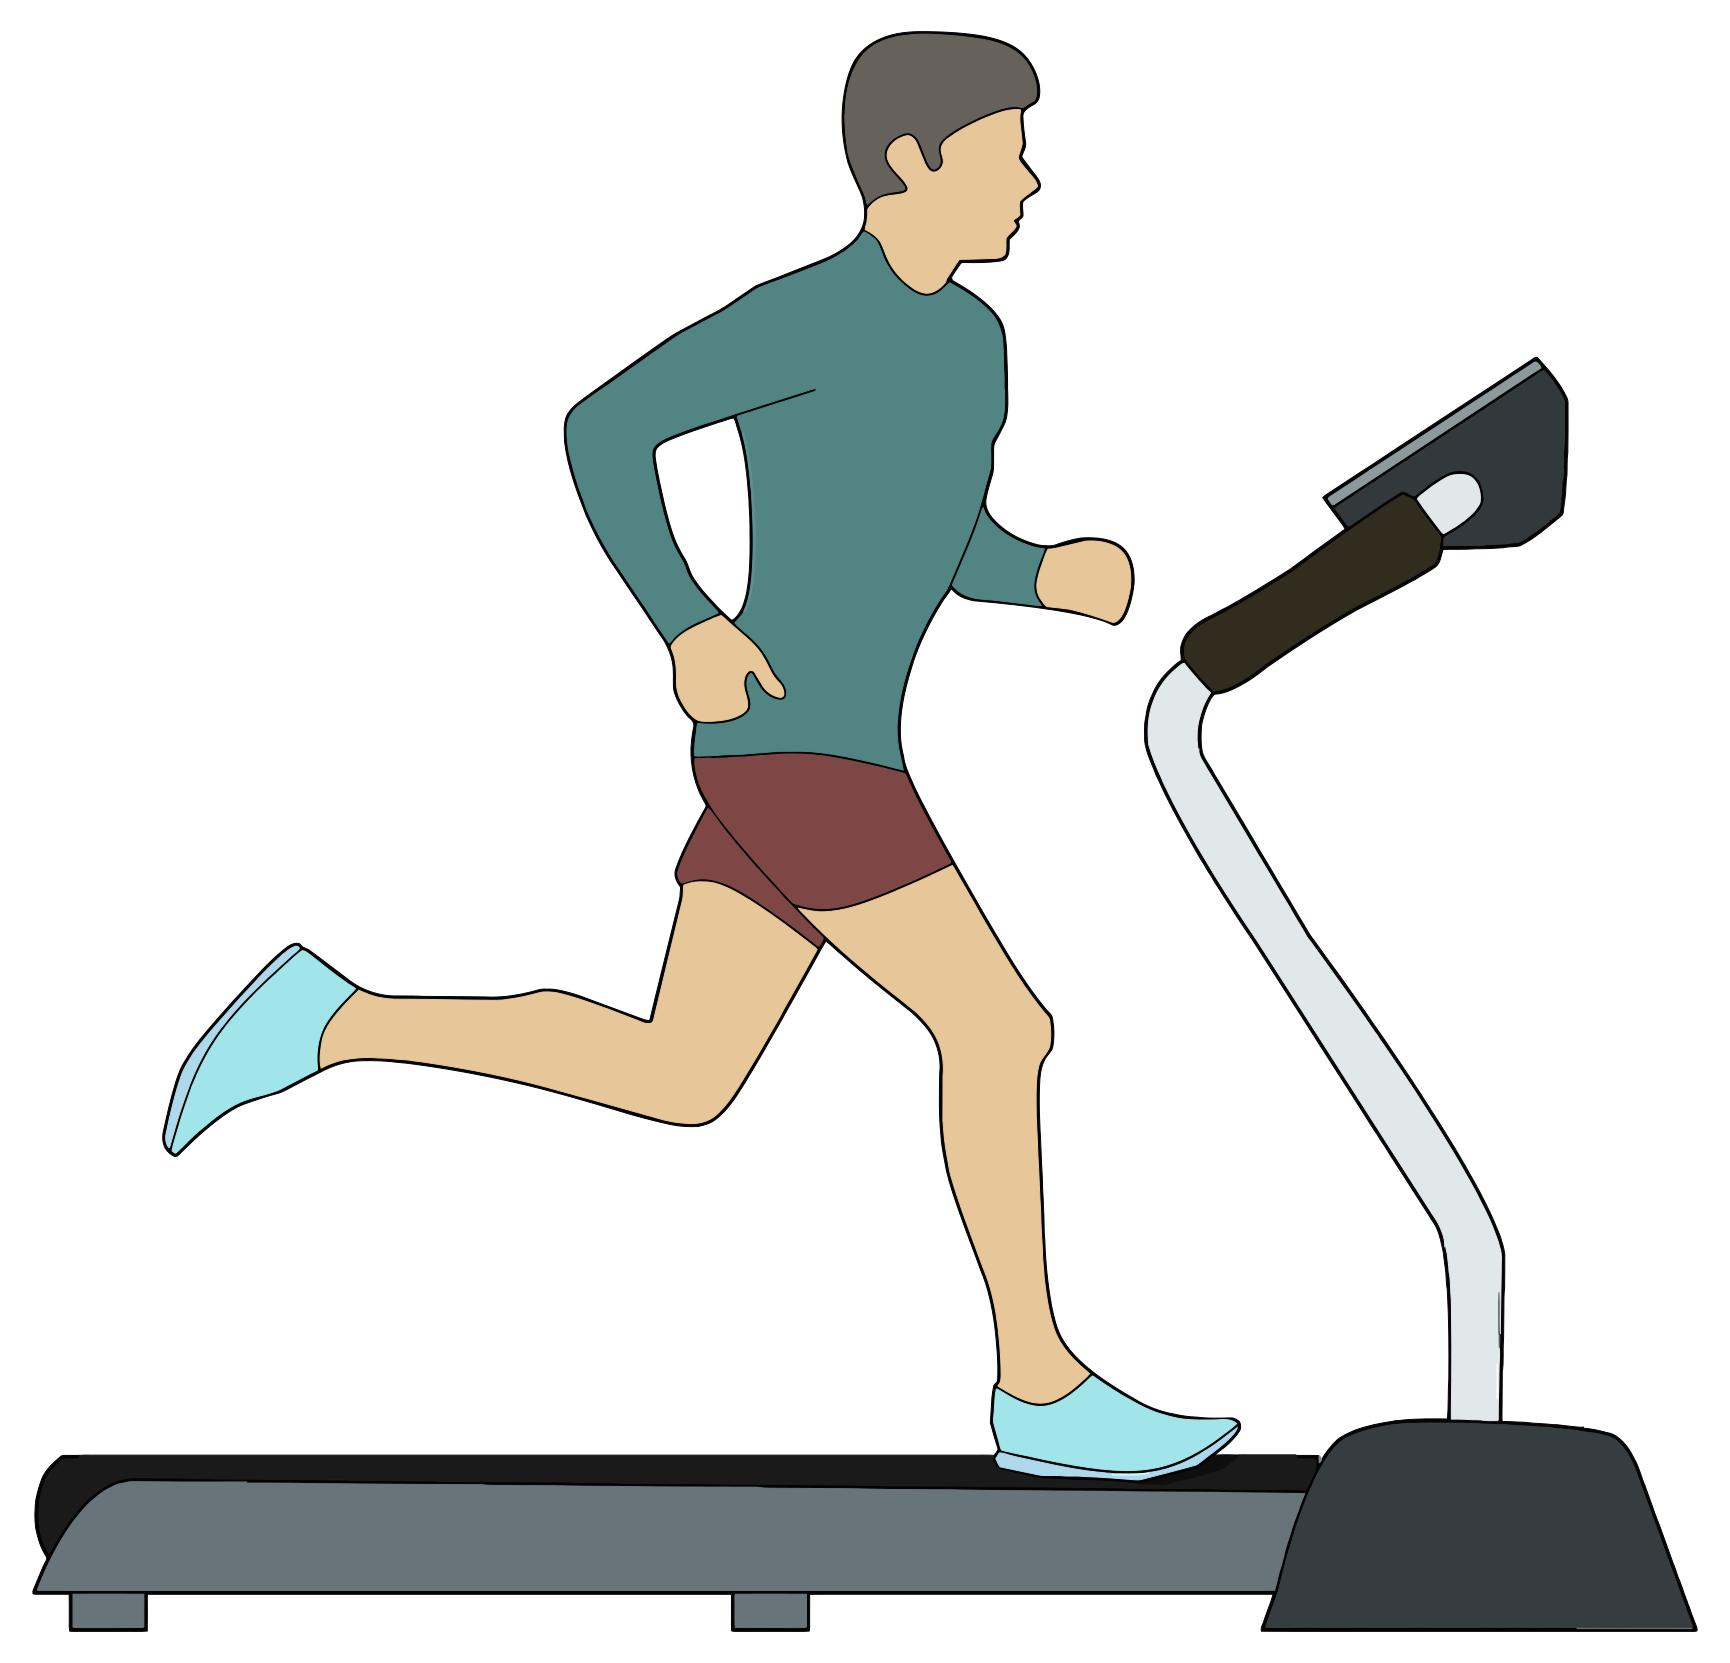 2 people on treadmill clipart jpg library stock HEALTH Exercising on a treadmill may diminish menstrual pain | Dünya ... jpg library stock